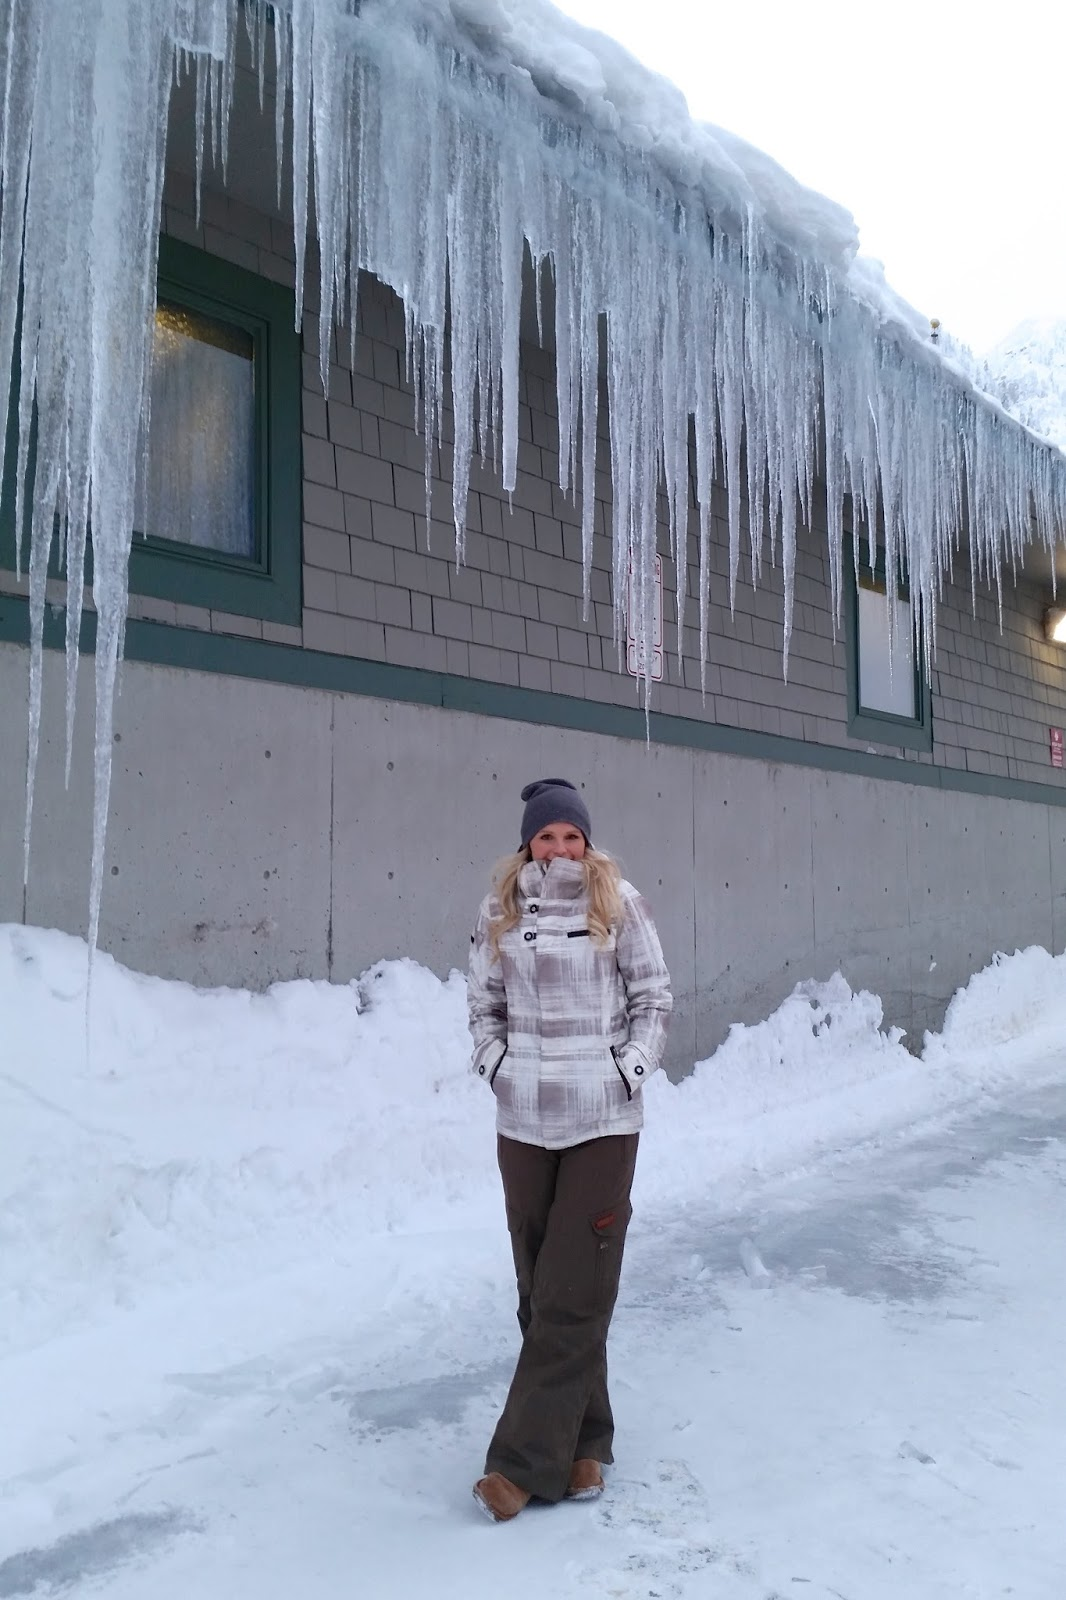 huge icicles on the side of a lodge in washington